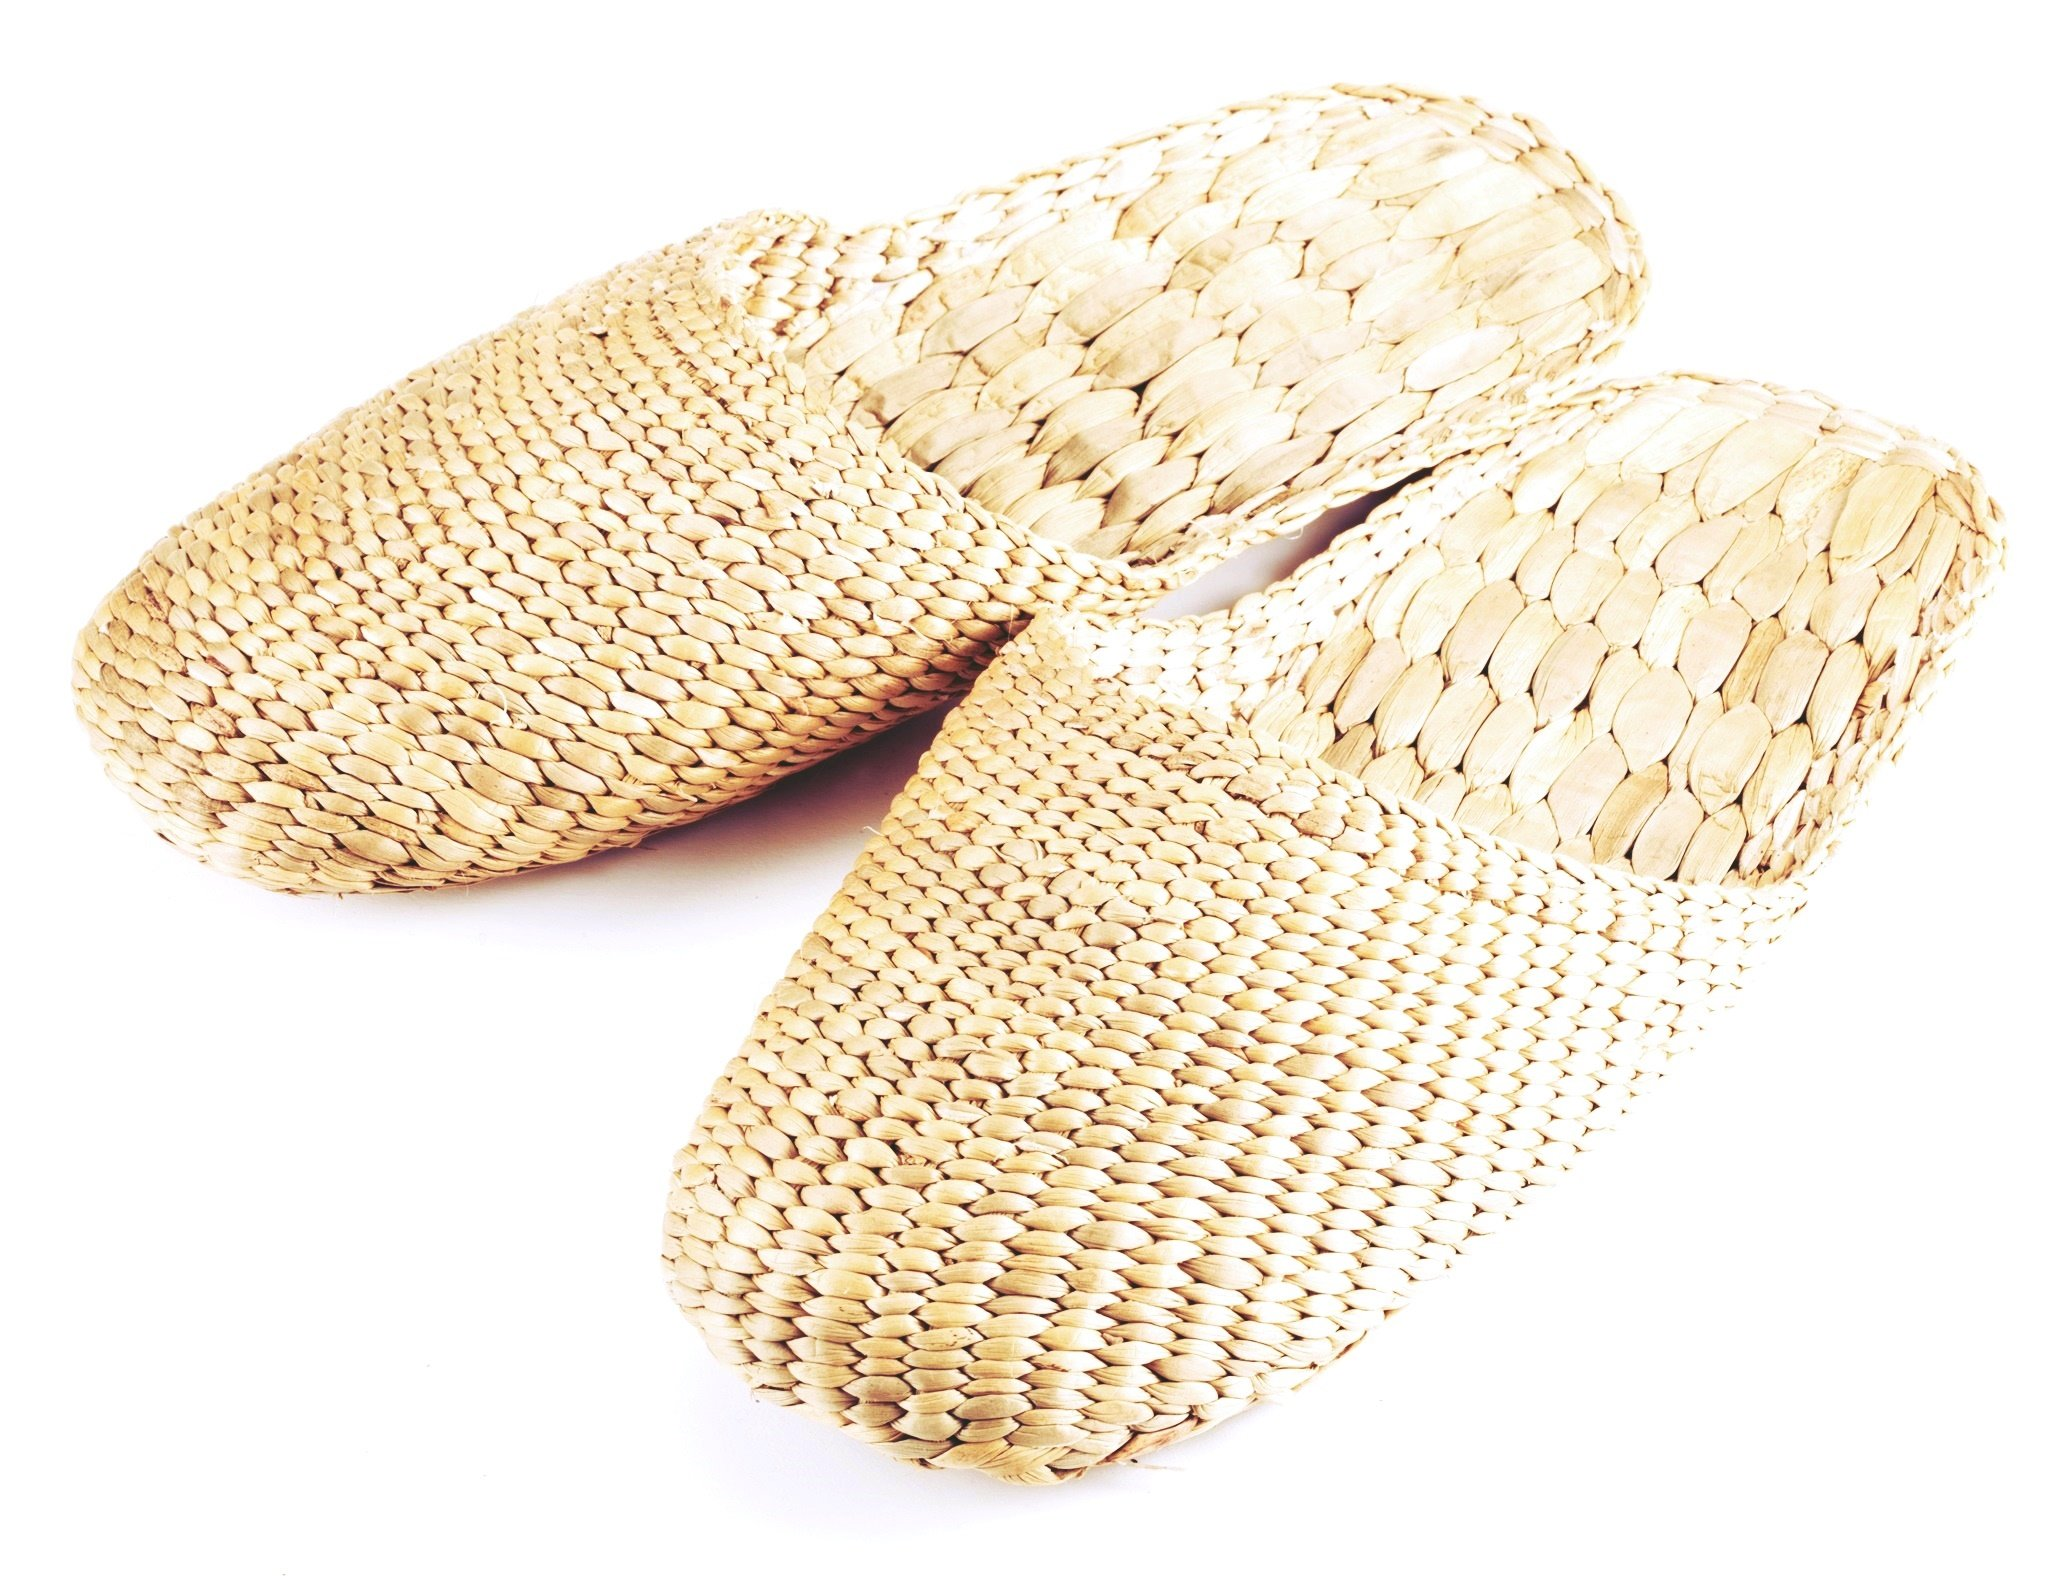 Gaia Guy 100% Natural Handmade Sandals/Slippers for Men and Ladies - Hand Woven Water Hyacinth - Knitted Style Medium (L10 x 3.5'' Approx.)